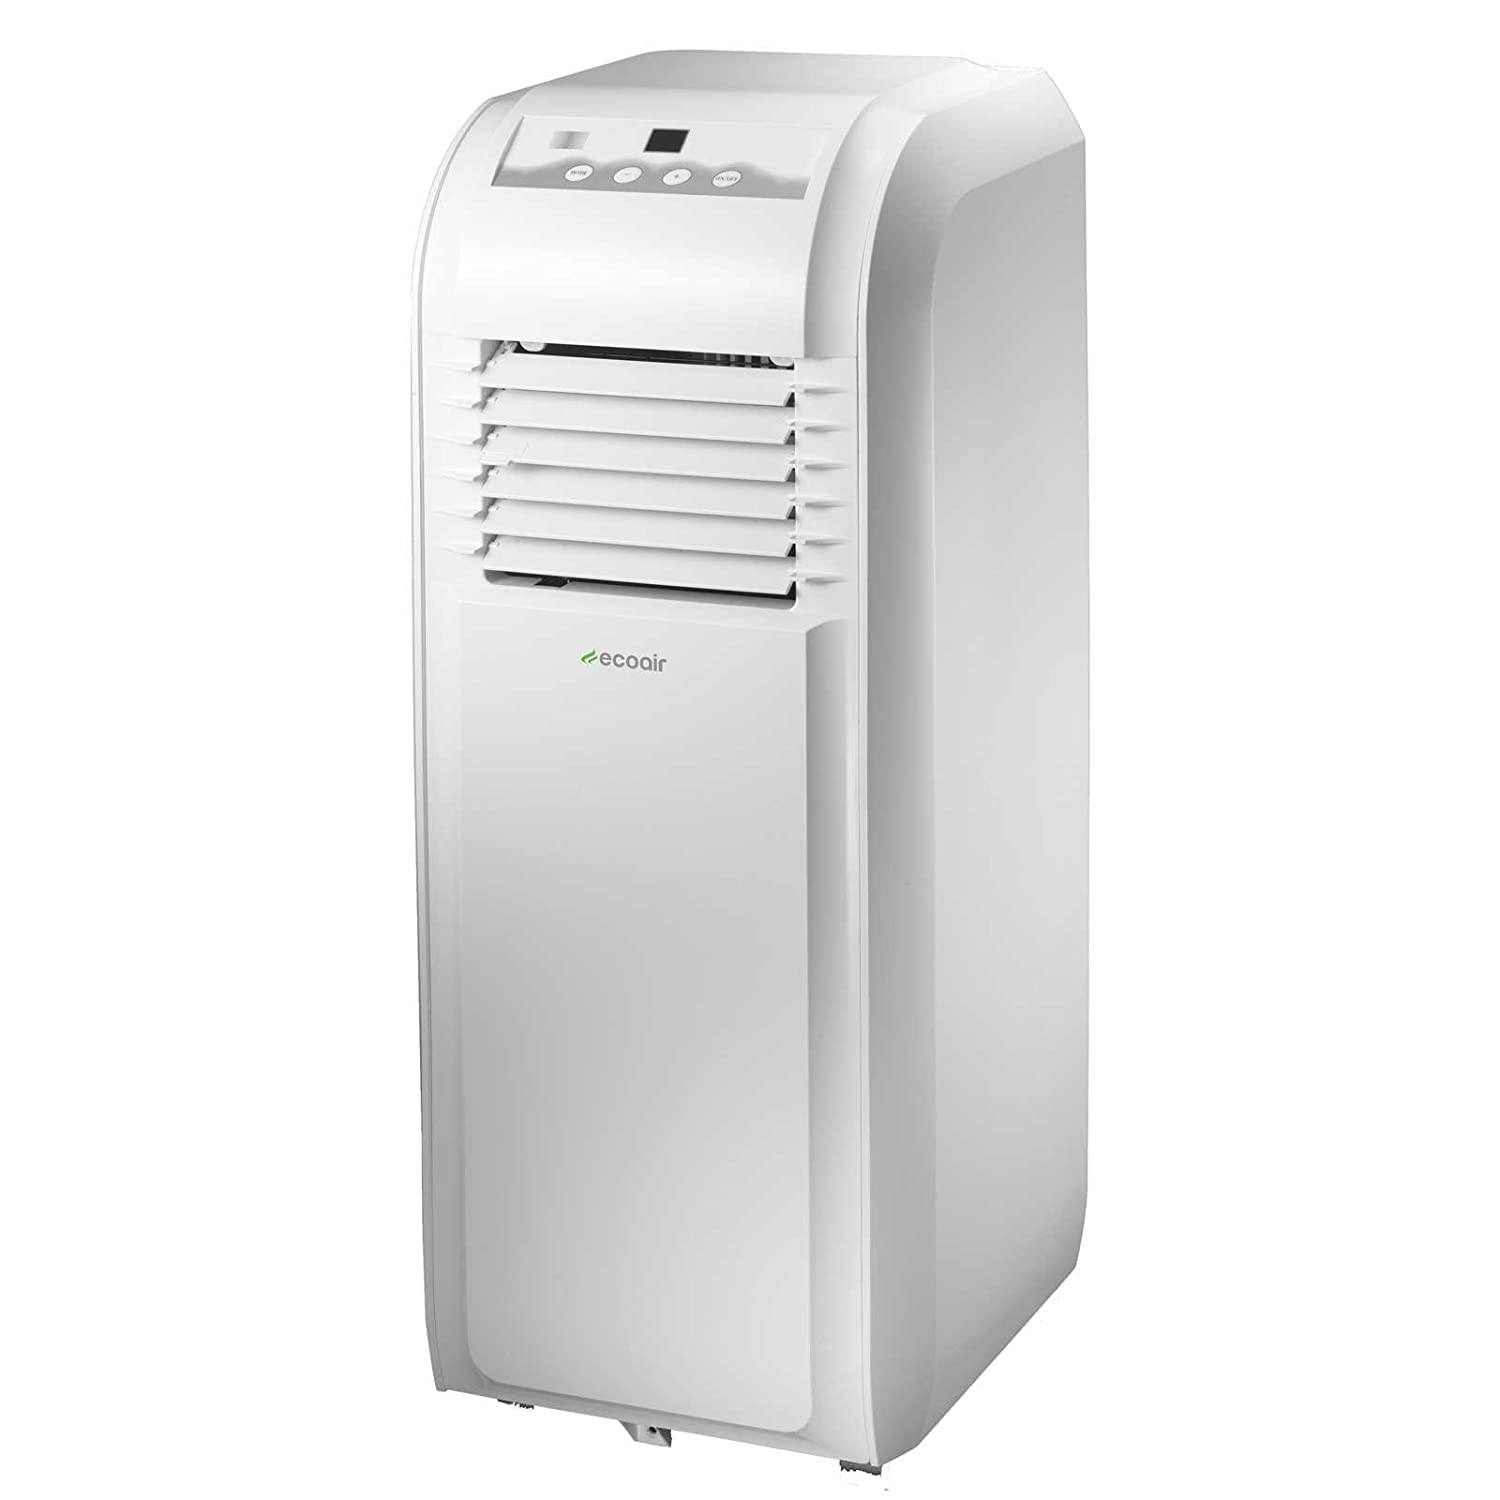 EcoAir ECO8P 8000 BTU Portable Air Conditioning Unit (Cooling Only on ventilation for bedroom, refrigerator for bedroom, portable air conditioner for bedroom, kitchen appliances for bedroom, lights for bedroom, portable ac for bedroom,